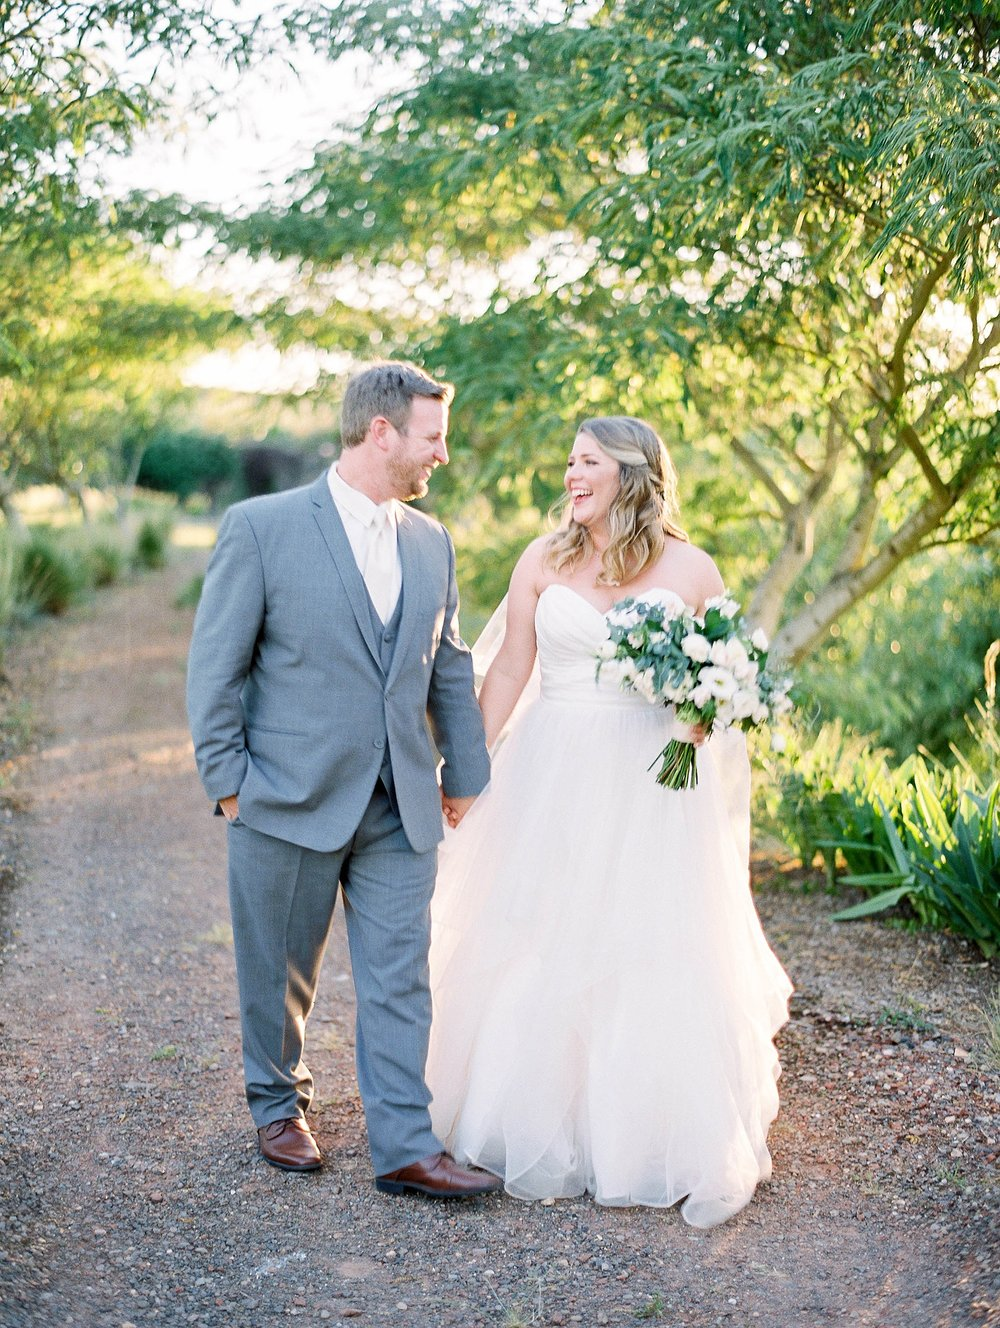 Bridalbliss.com | Portland Wedding | Oregon Event Planning and Design | Sweetlife Photography